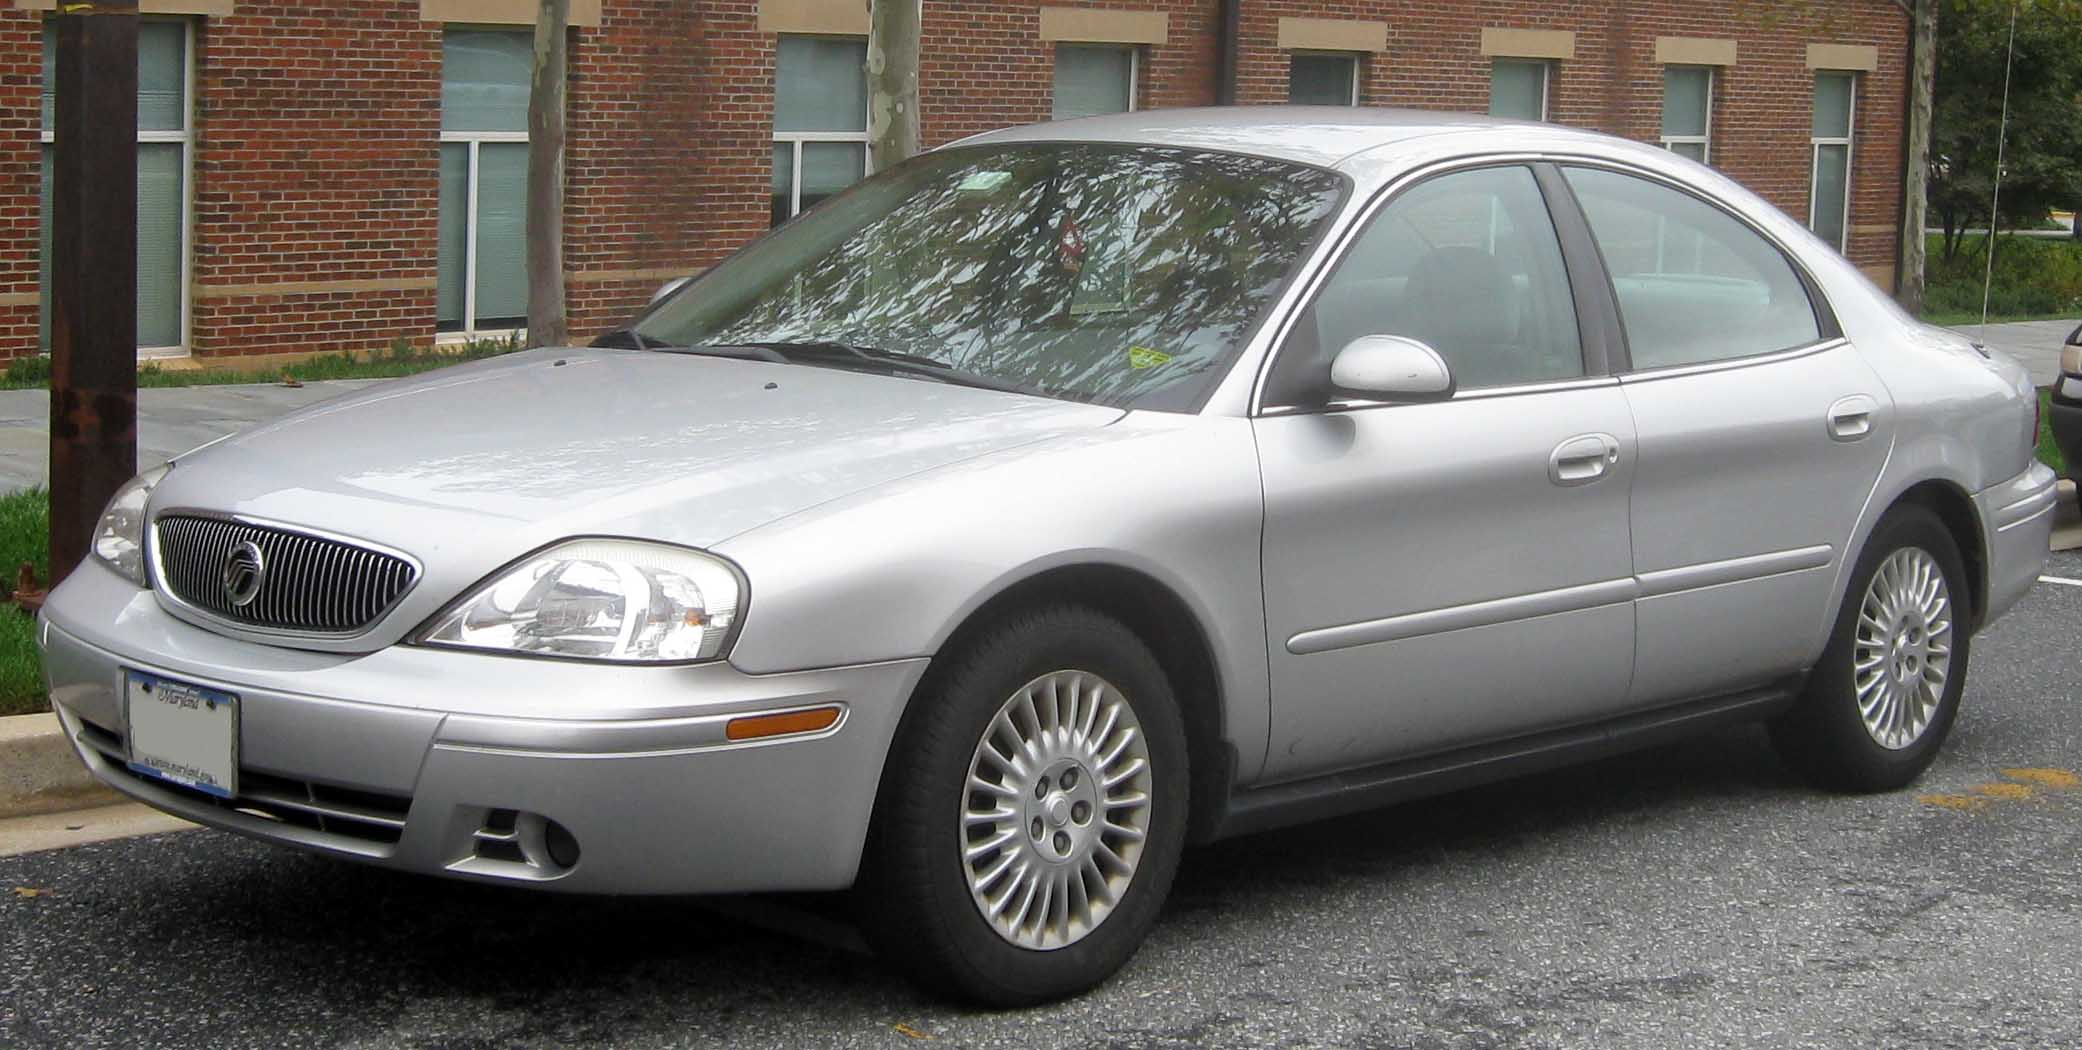 2005 Mercury Sable #1